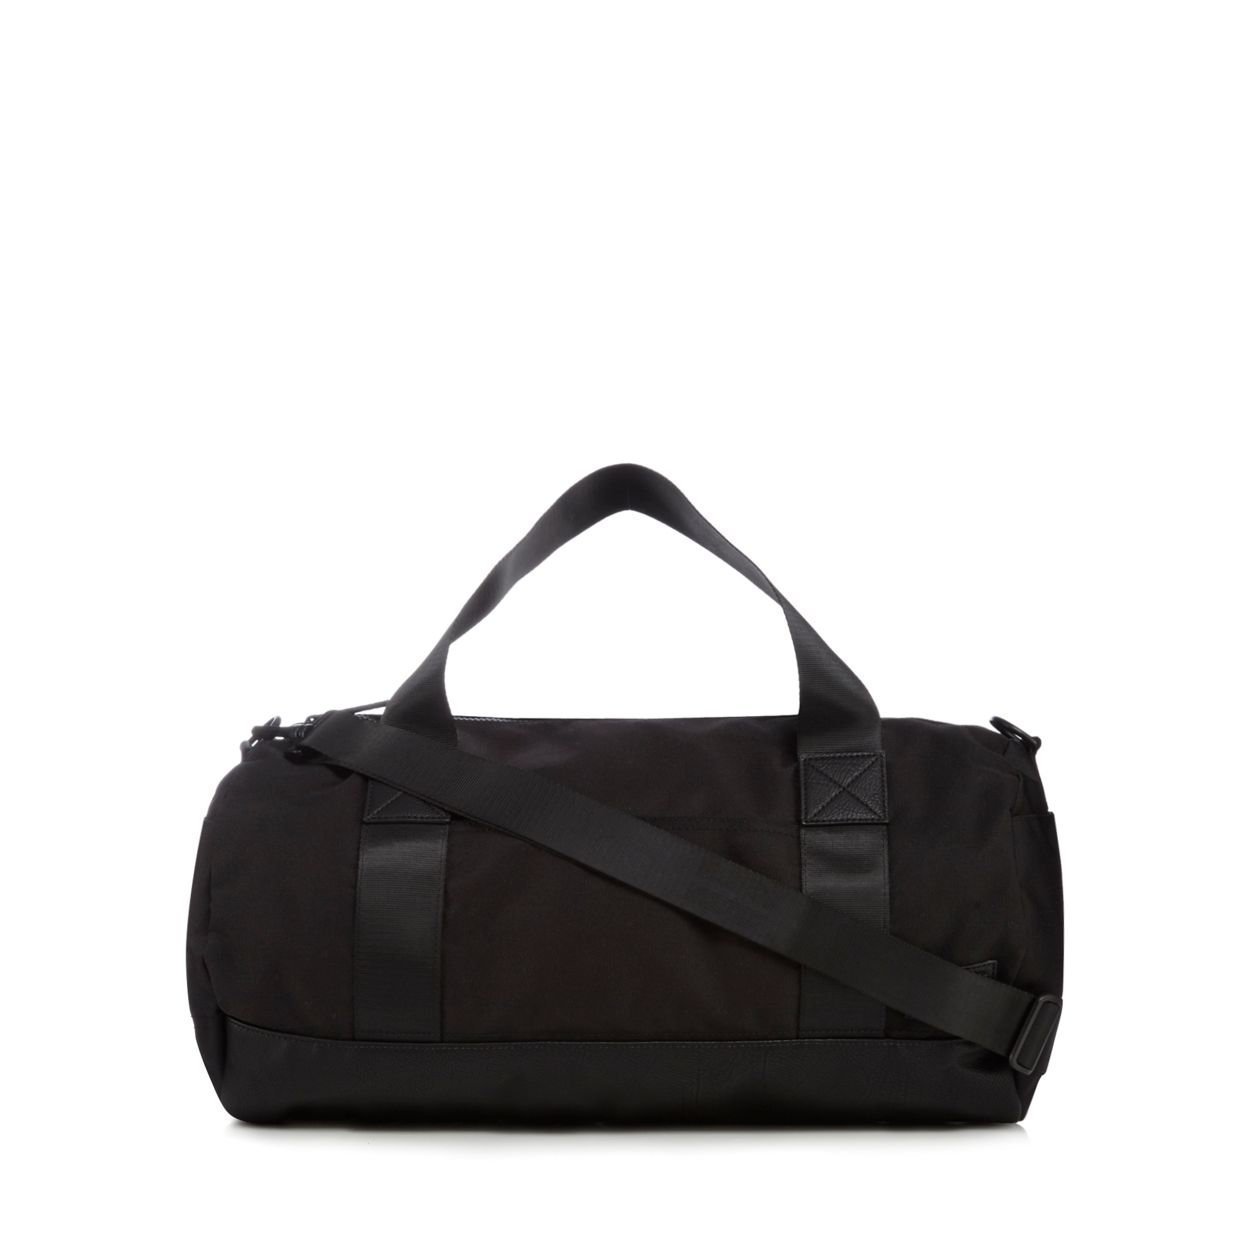 Red Herring Black large holdall bag